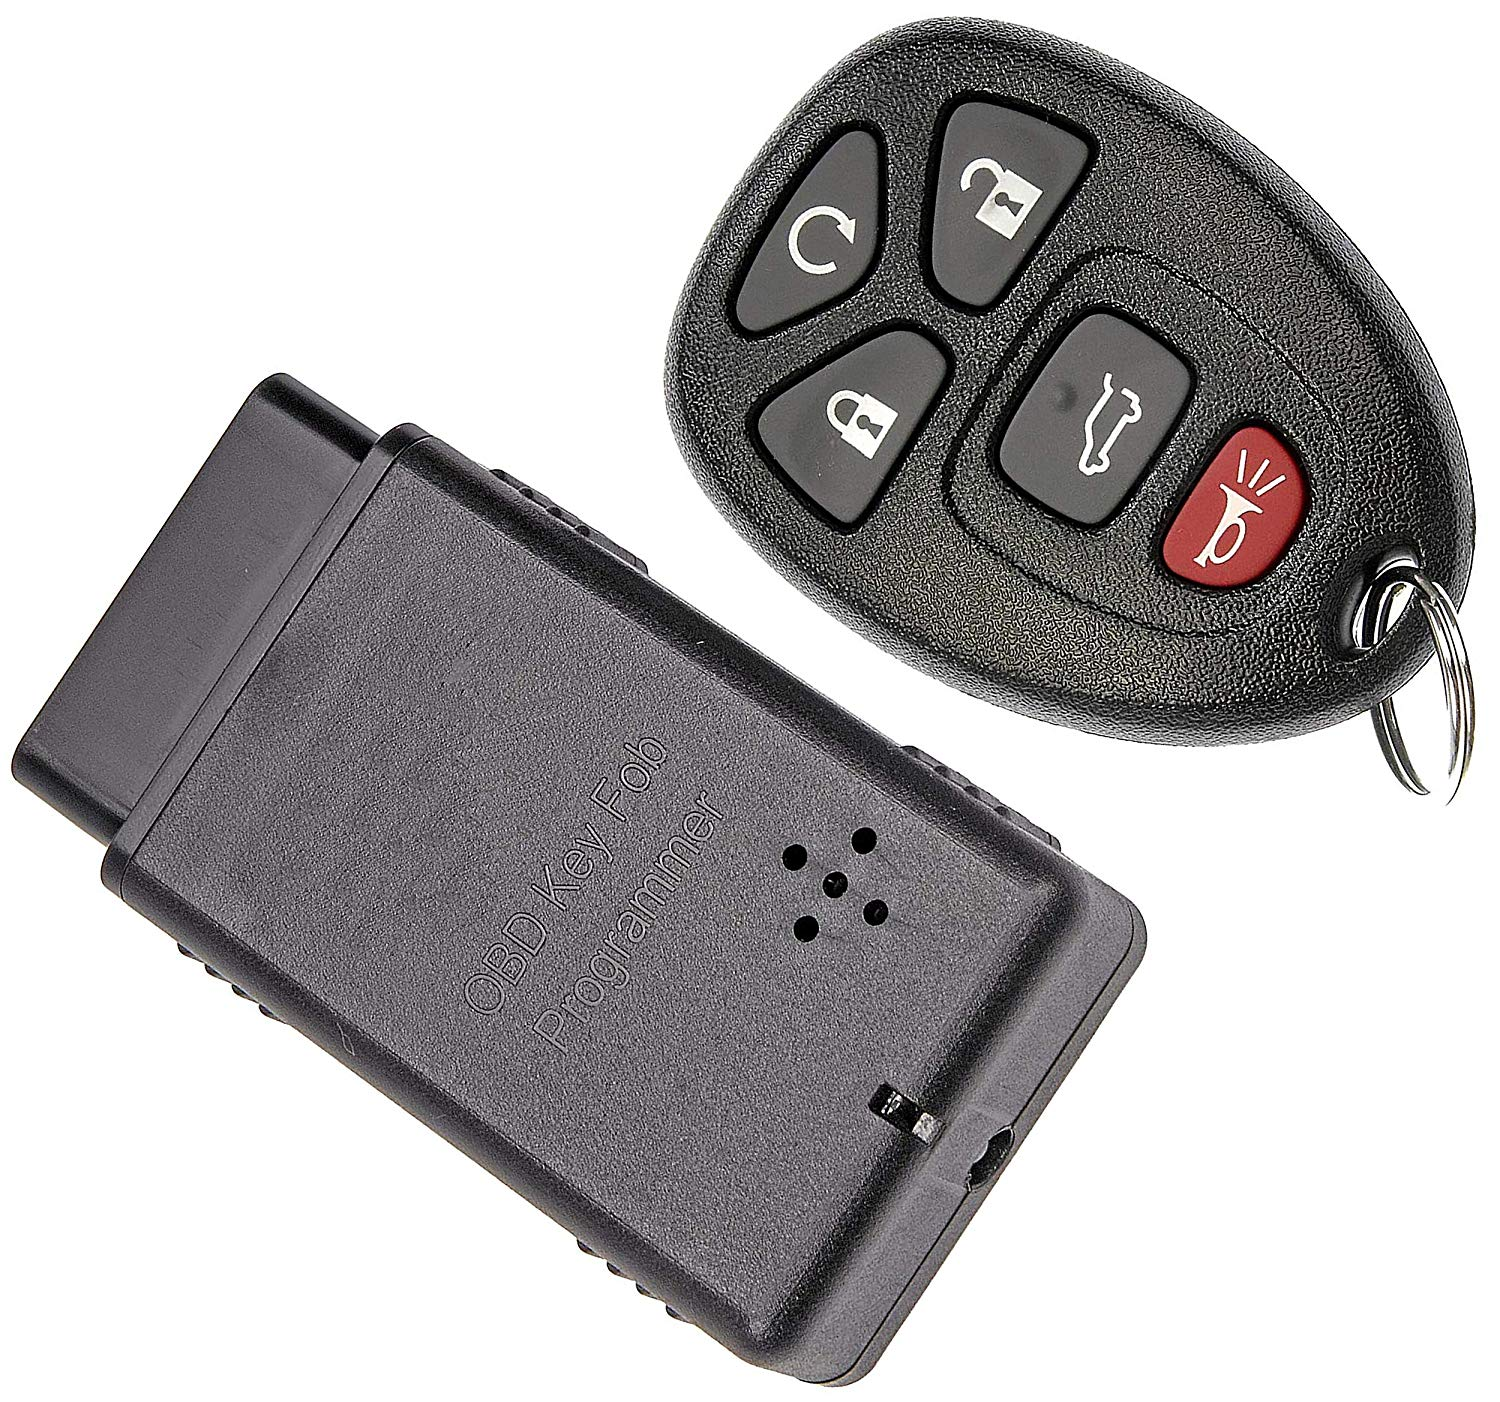 APDTY 121923 Keyless Entry Remote Transponder Key Fob w/ Auto Programming Tool (Fits Models With Auto Start Software; Replaces GM 15913415, 20869053, 20869963, 20952477, 22756459, 22936101, 22951509)